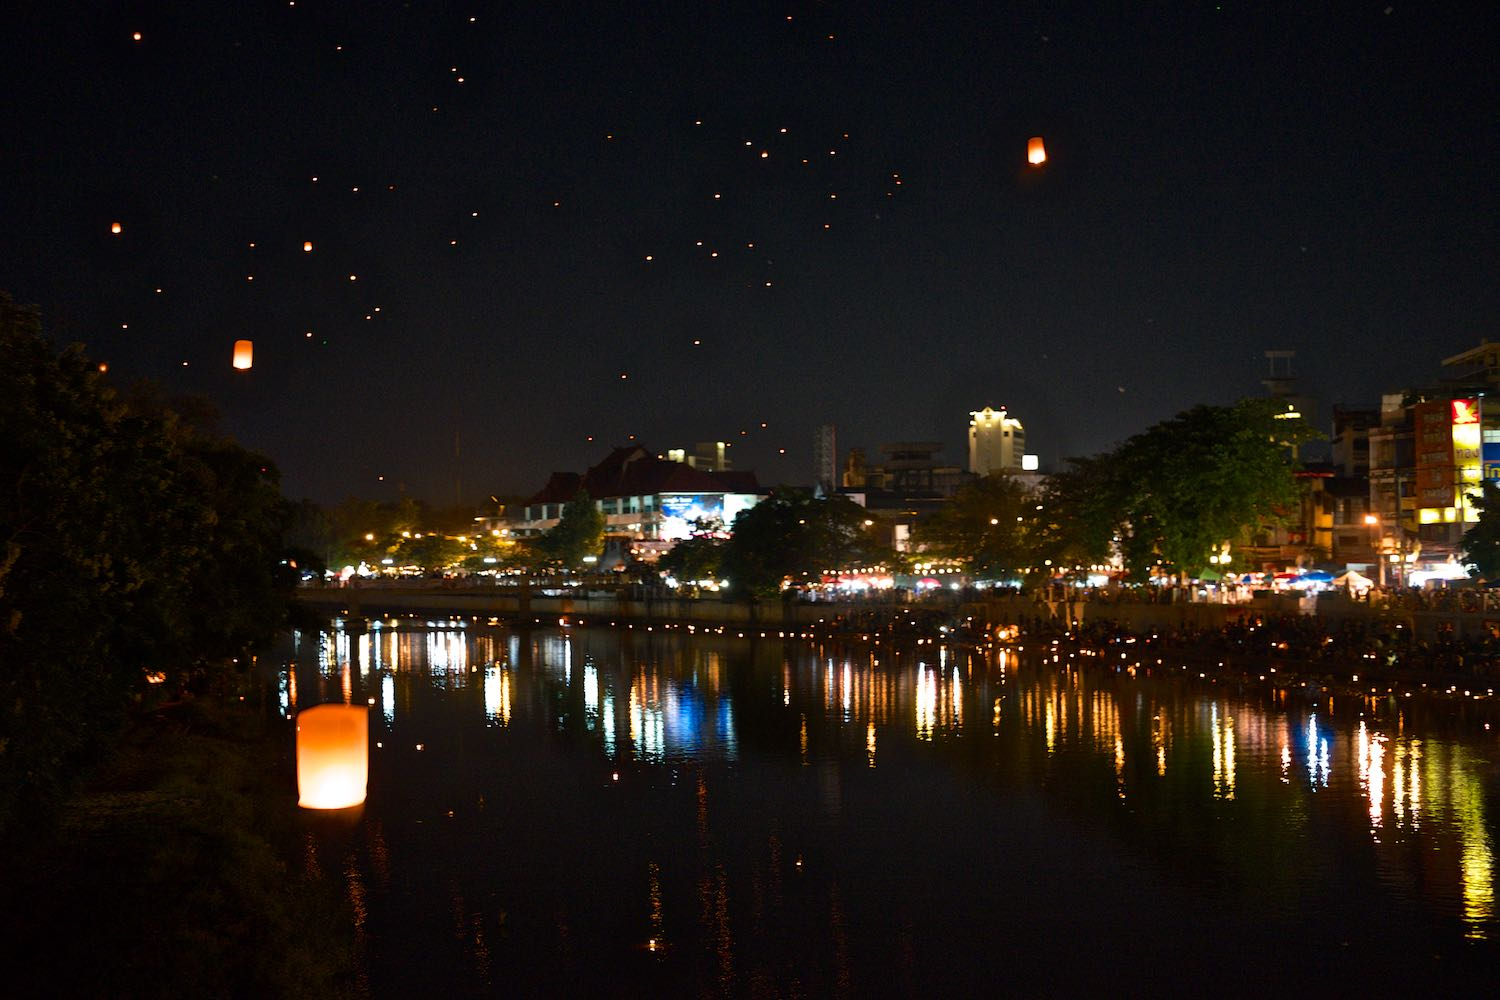 The river is lit up with Krathongs and the sky is filled with paper lanterns.